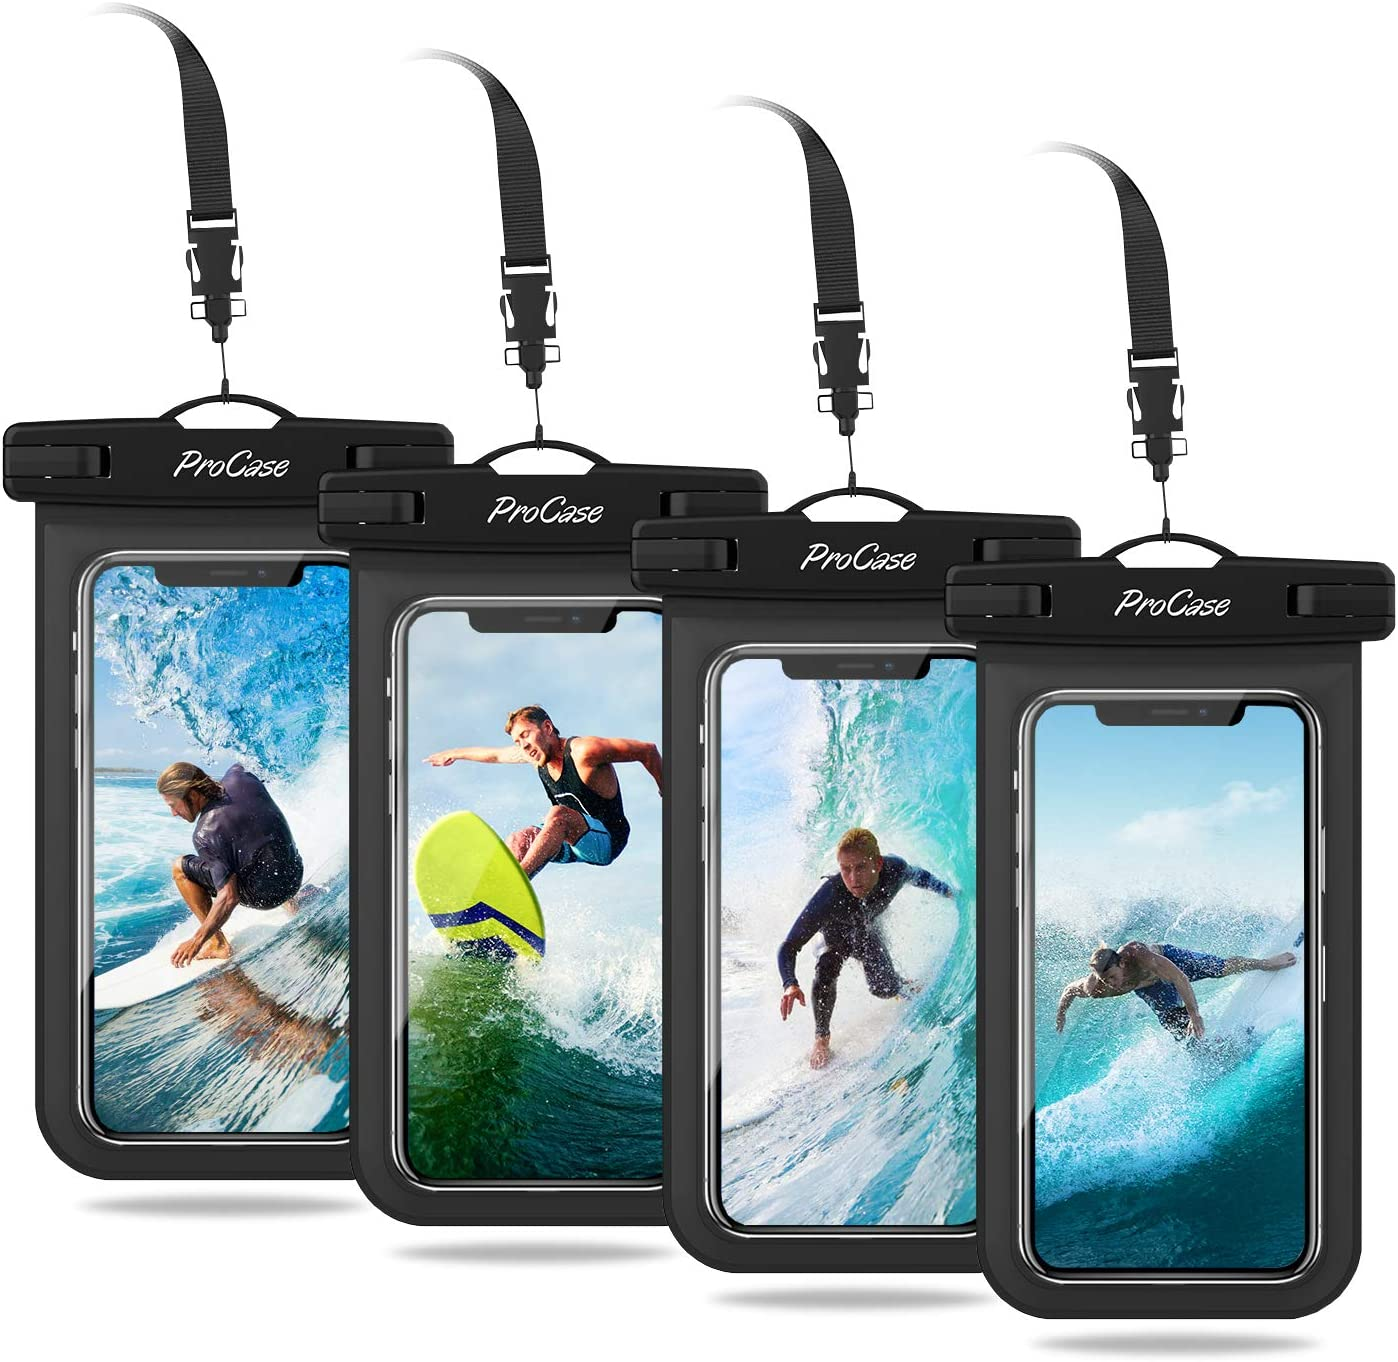 "ProCase Universal Cellphone Waterproof Pouch Dry Bag Underwater Case for iPhone 11 Pro Max Xs Max XR X 8 7 6S Plus, Galaxy S10+ S10e S9 S8+ / Note 10 10+ 5G 9 8, Pixel 3a XL up to 6.8"" - 4 Pack, Black"